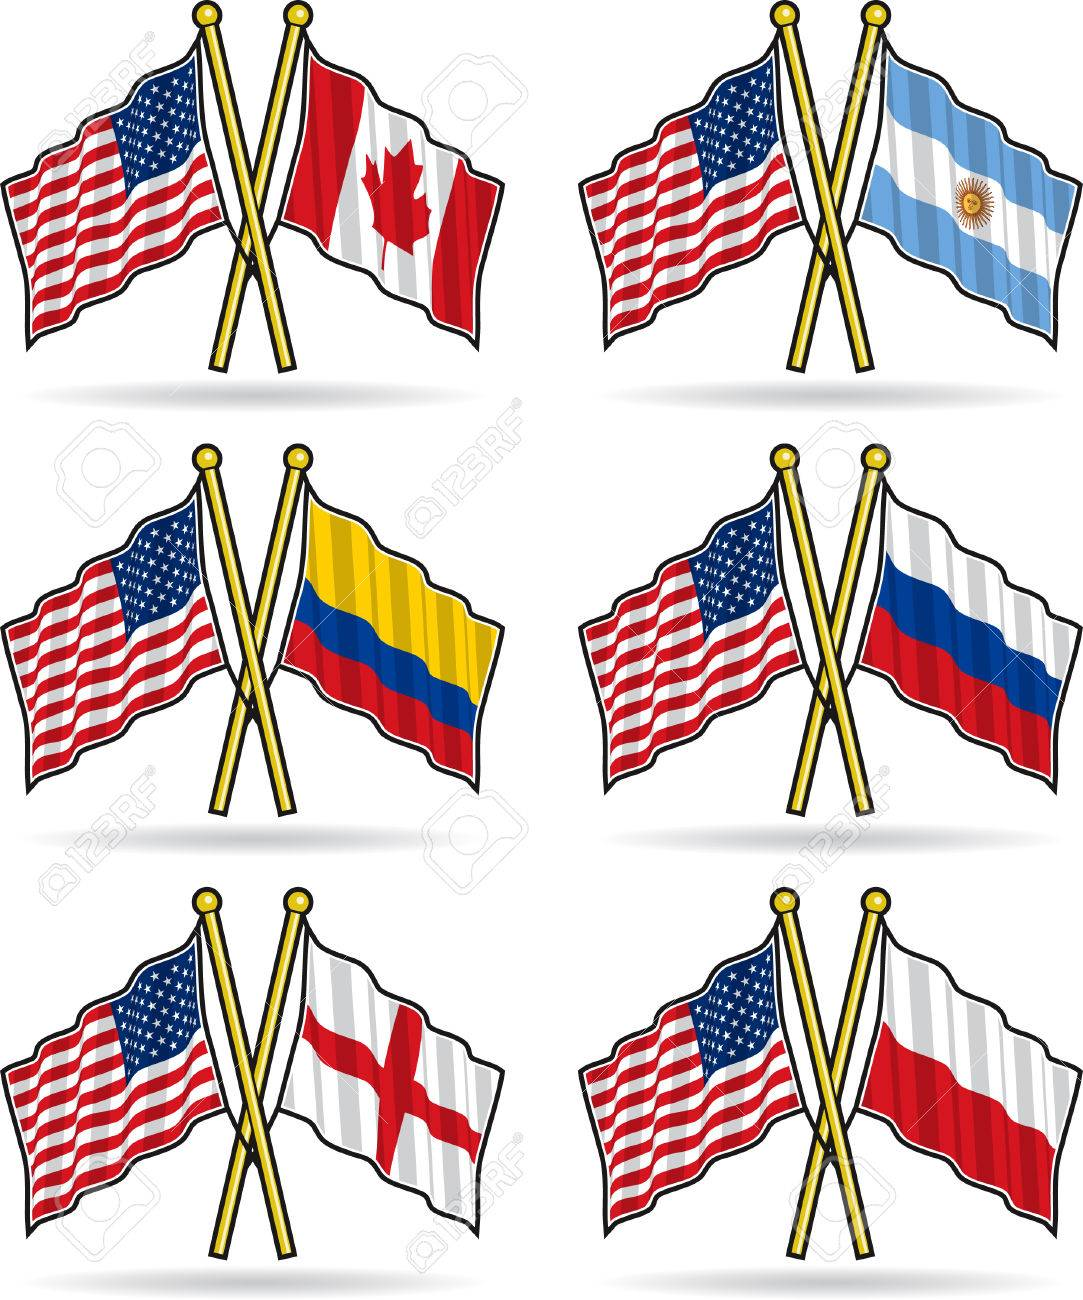 American Friendship Flags Stock Vector - 6975534